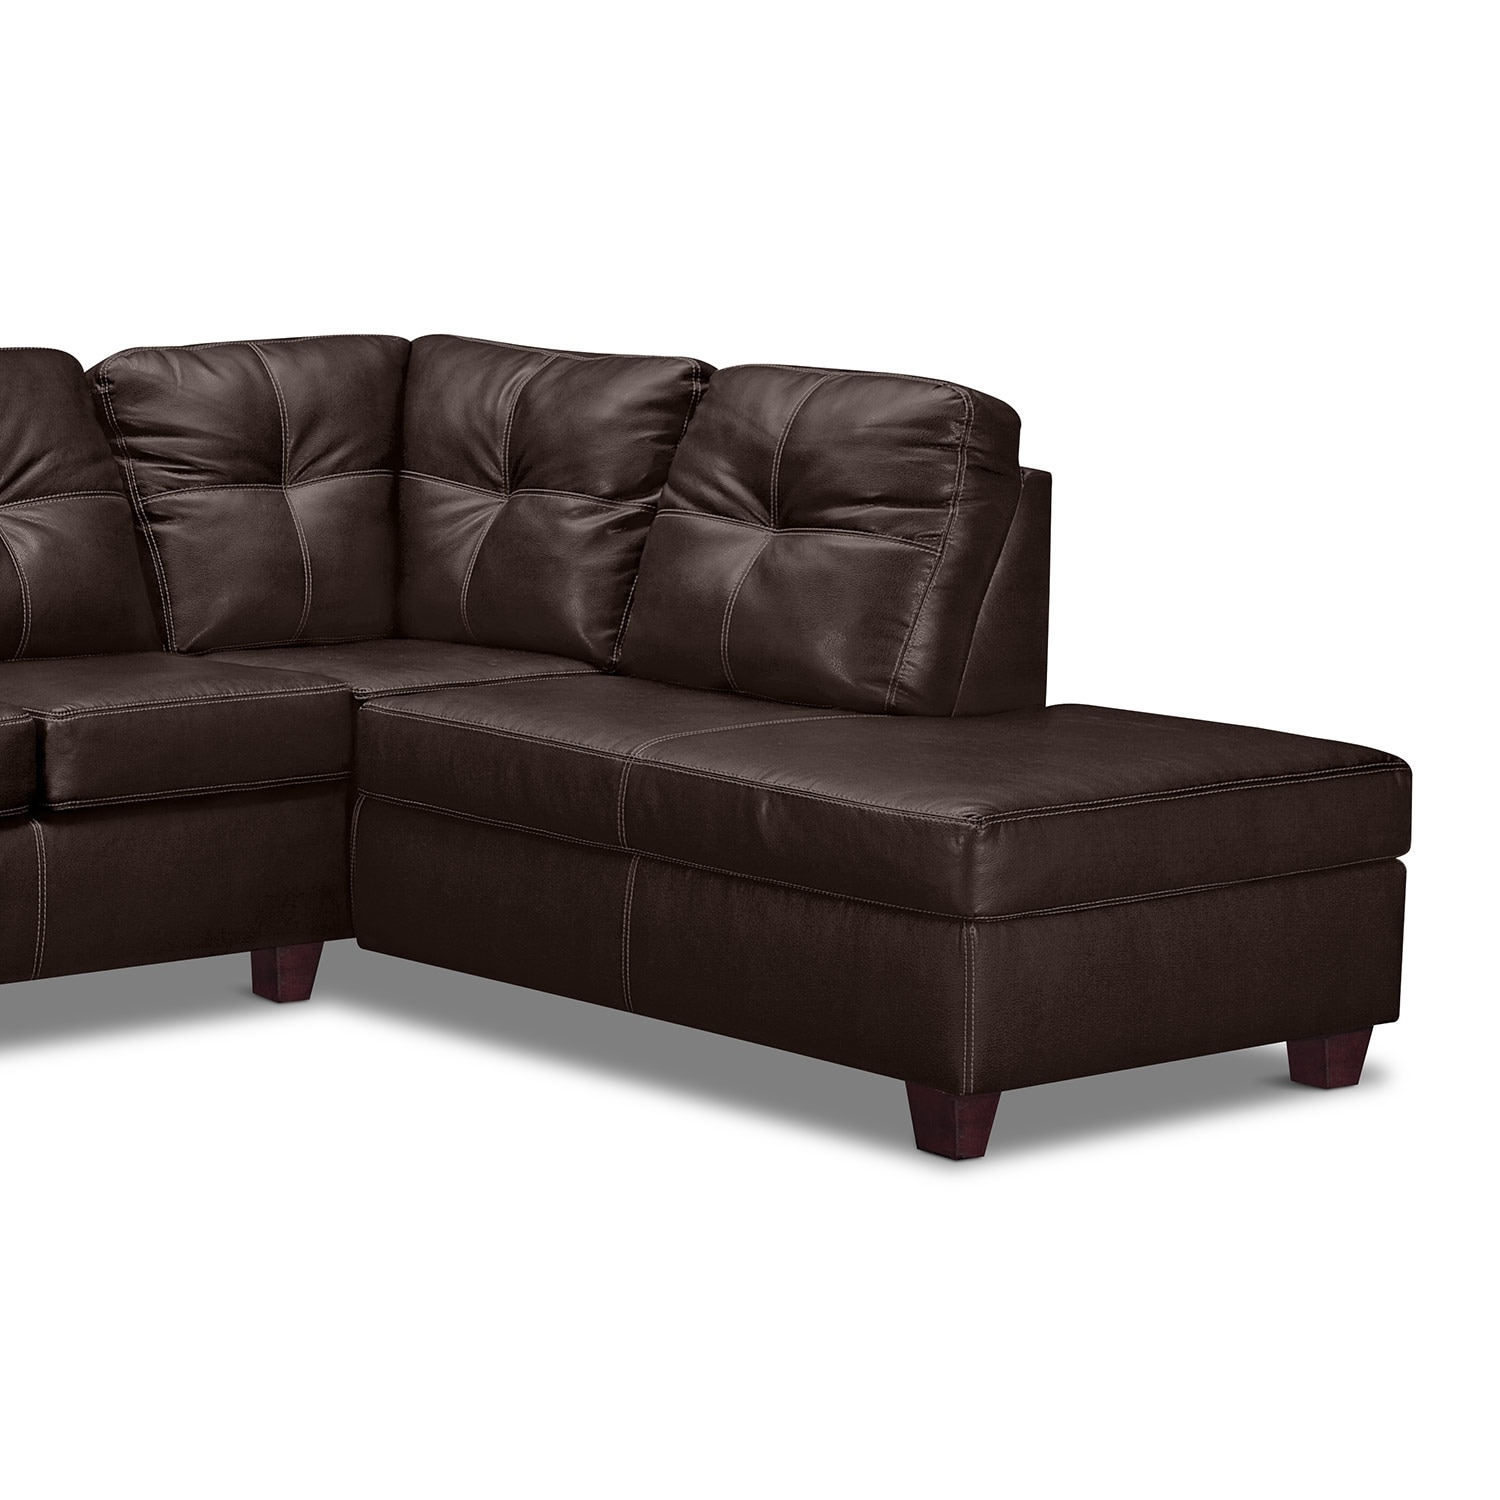 2 Piece Sectional Sleeper Sectional Cole Ii 2 Piece Sectional 2 Piece Sectional Wsleeper 2 Piece